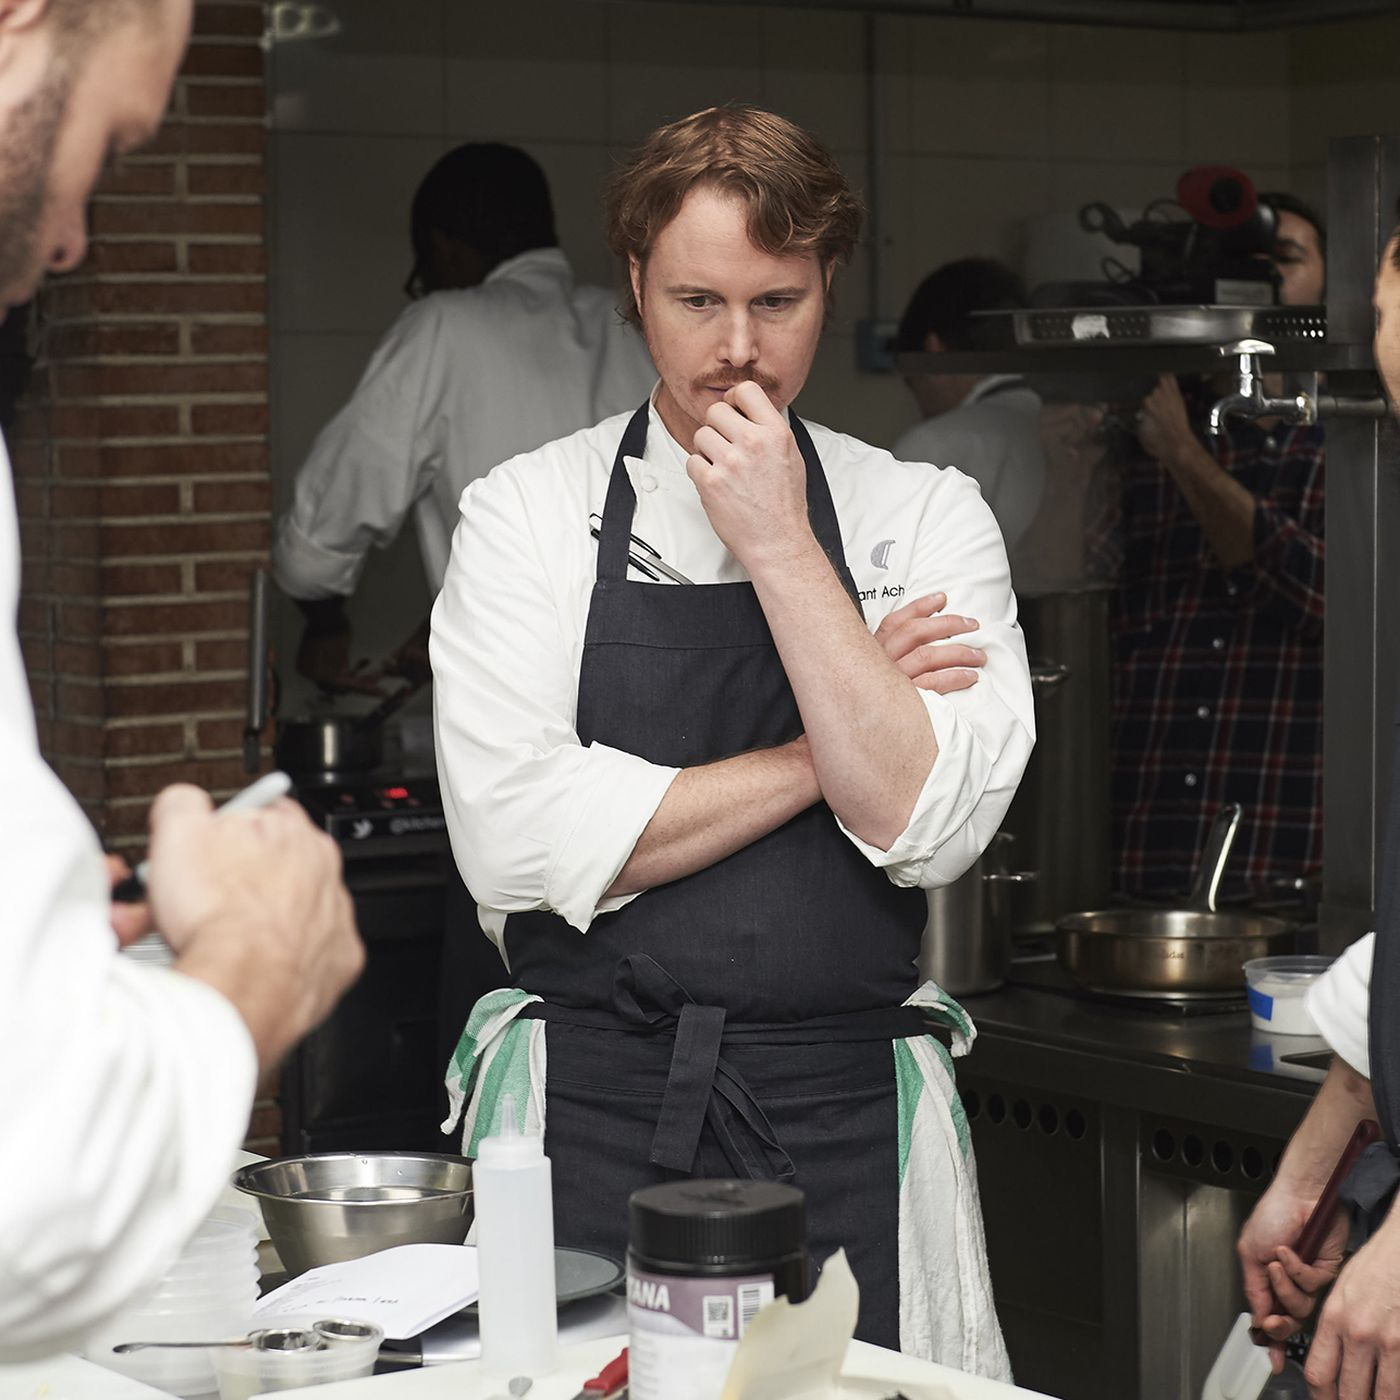 Who Is Grant Achatz The American Chef On Netflix S The Final